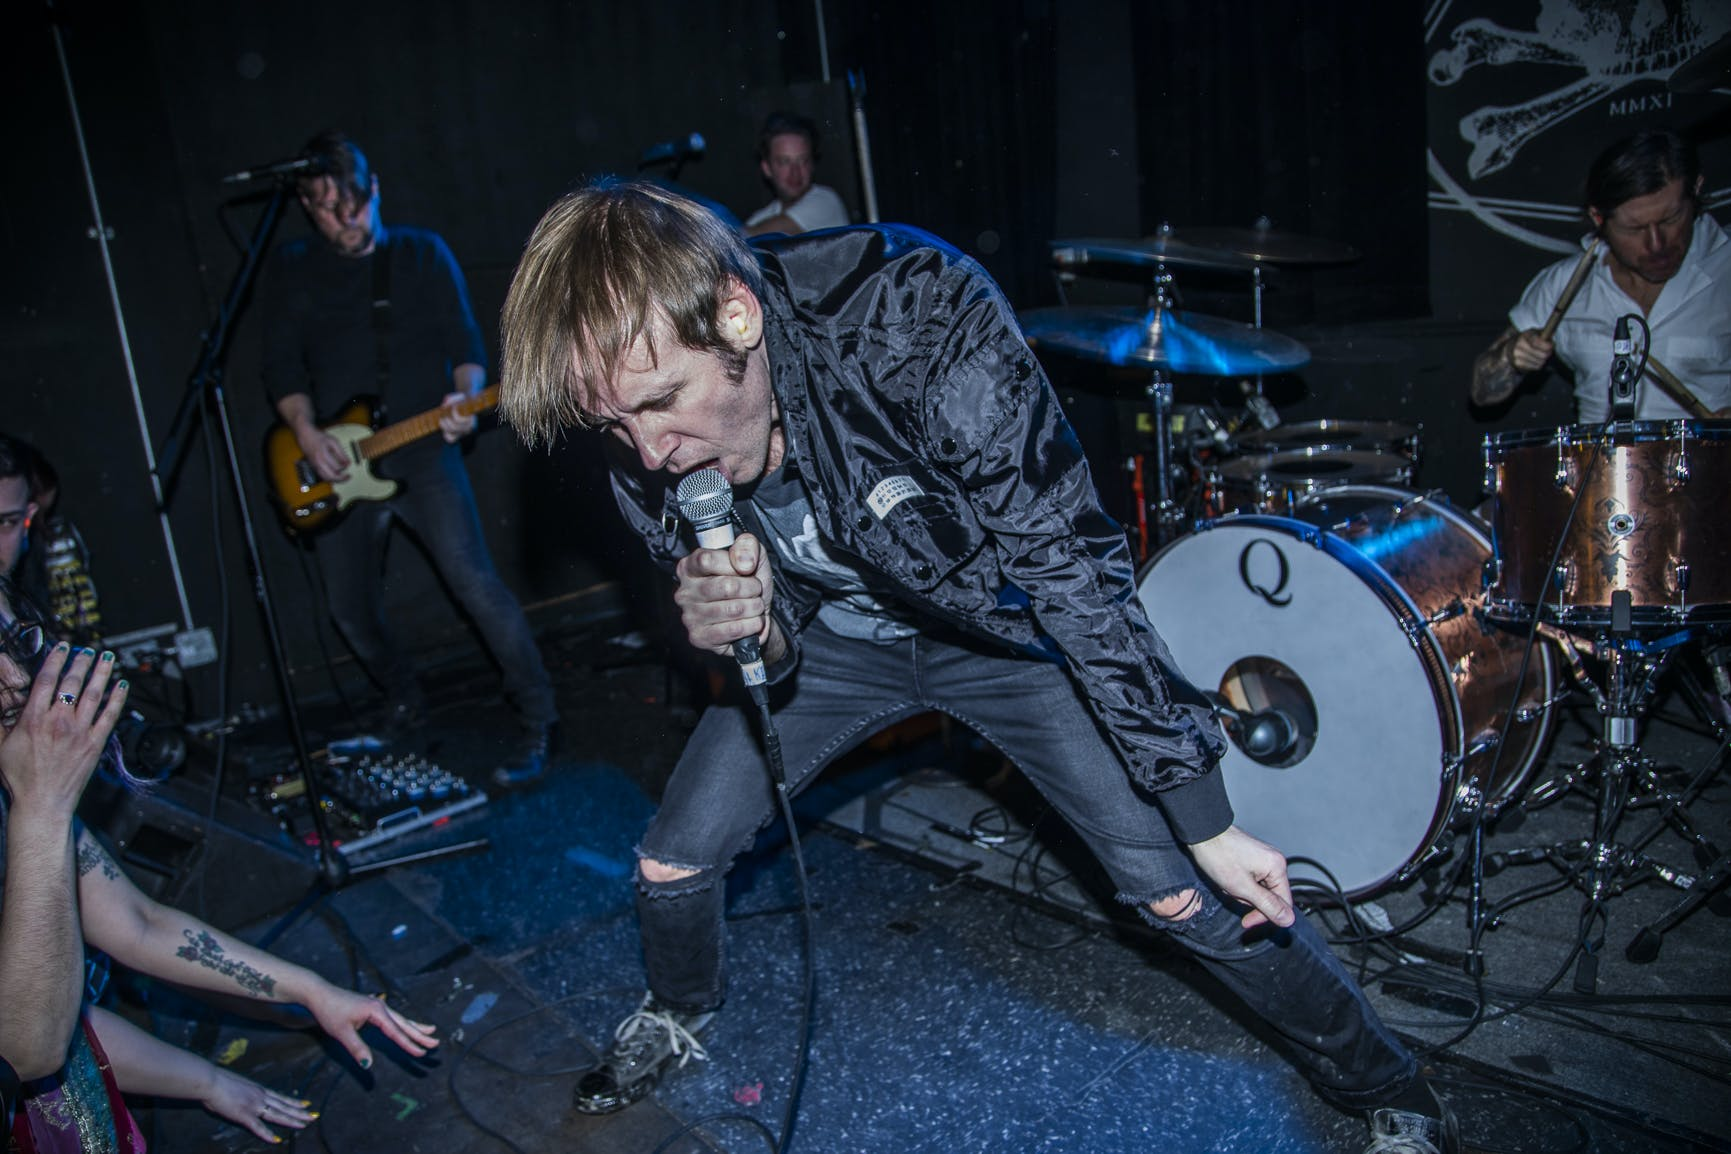 Thursday's Geoff Rickly To Open For Frank Iero On Upcoming U.S. Tour